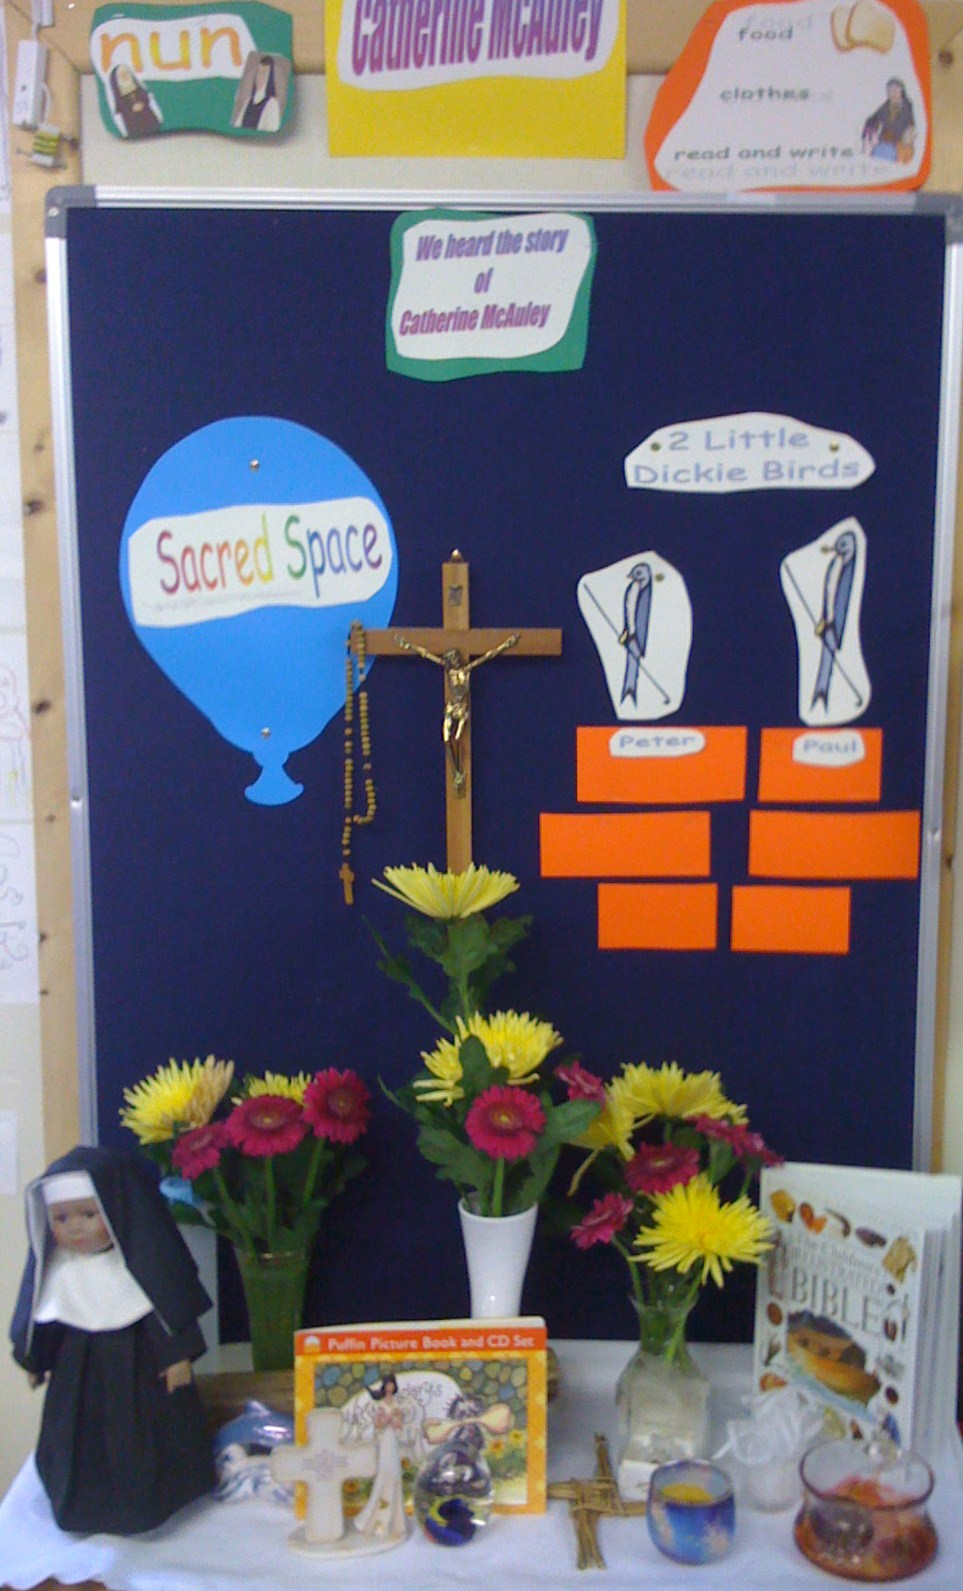 You can have a sacred space in your classroom or in the common areas